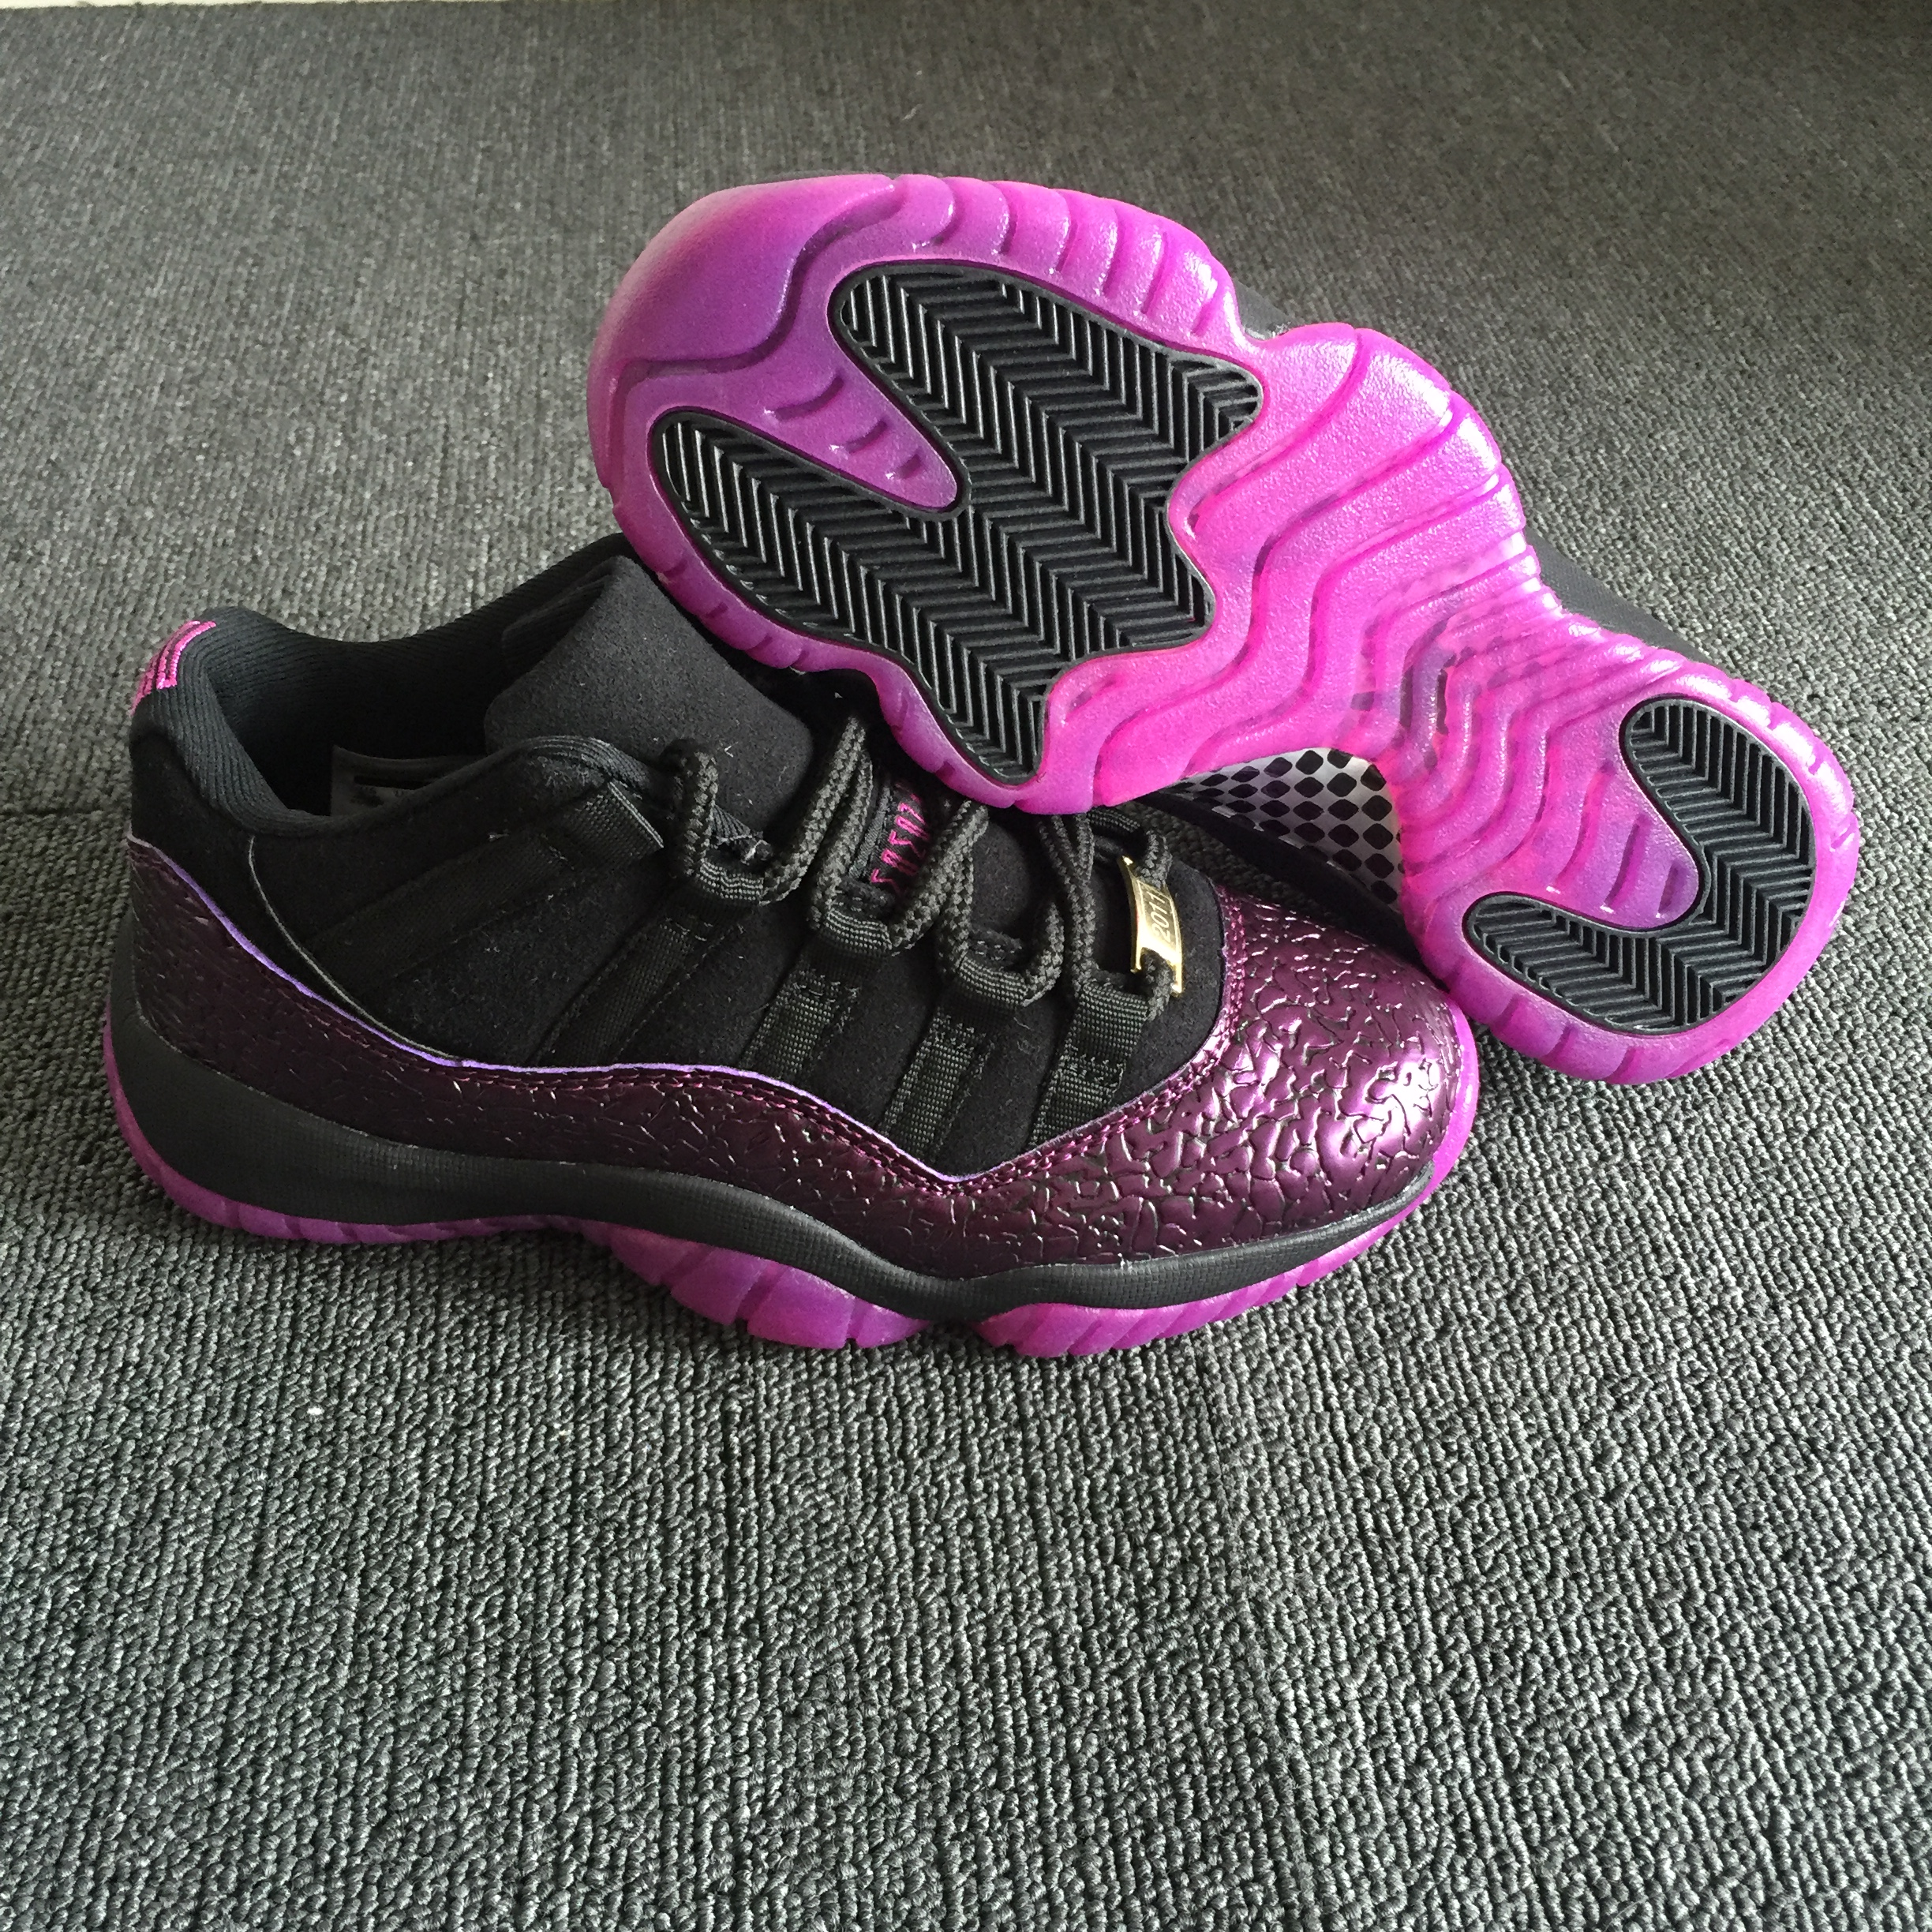 Women Air Jordan 11 Crack Black Pink Shoes